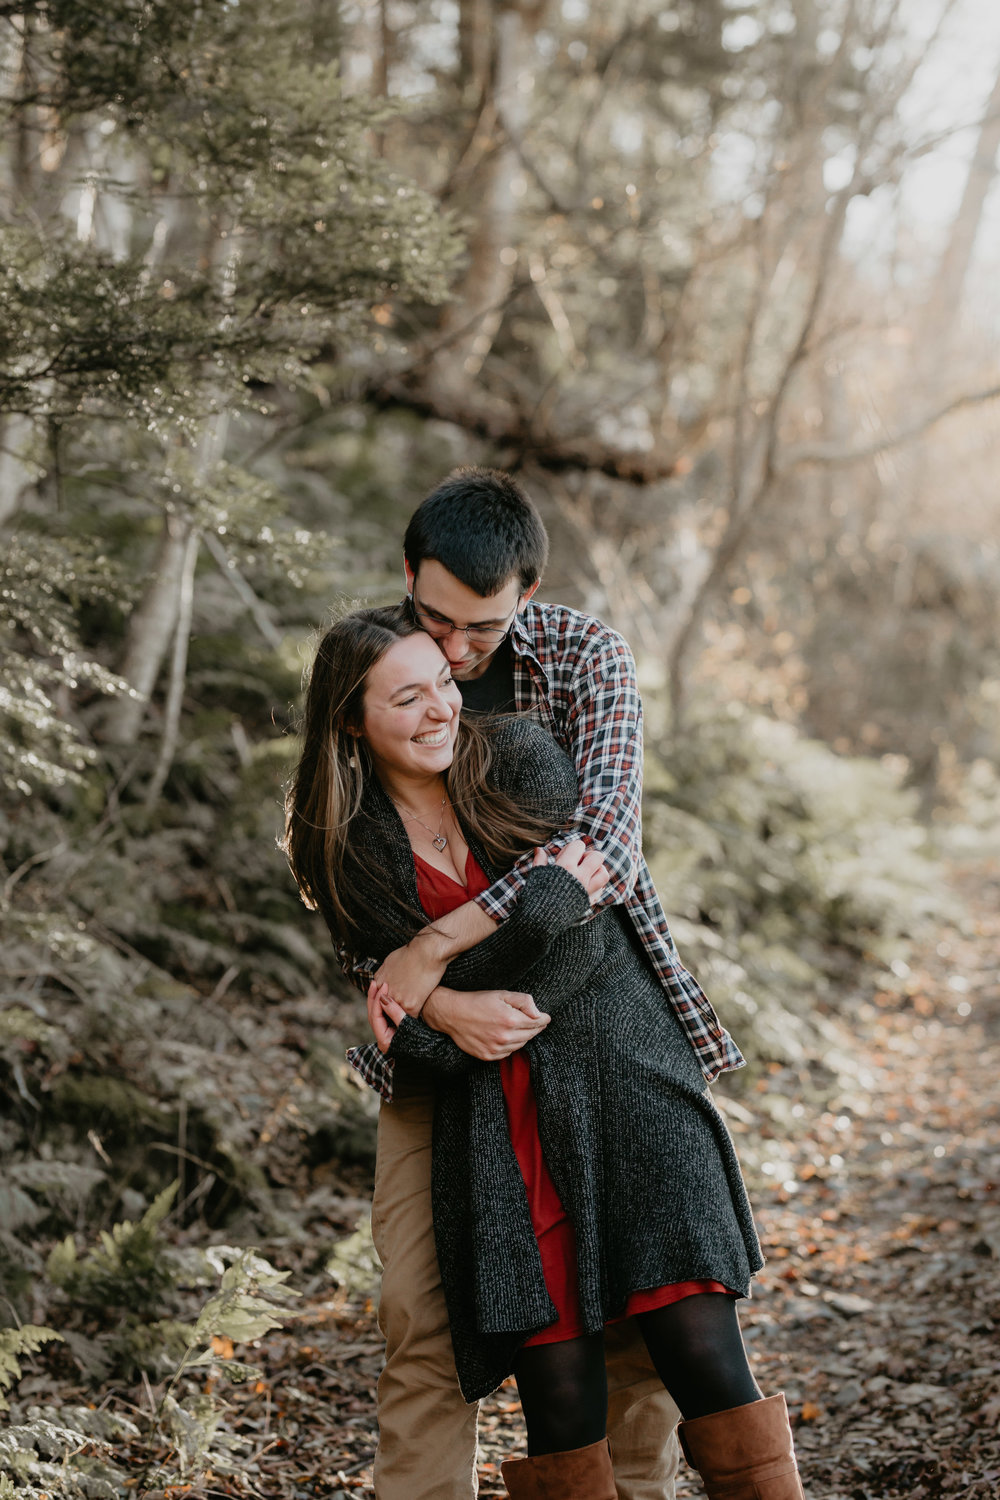 nicole-daacke-photography-shenandoah-national-park-adventure-engagement-session-with-fall-foliage-shenandoah-elopement-photographer-engagement-photos-in-virginia-charlottesville-national-park-adventure-elopement-photographer-3786.jpg